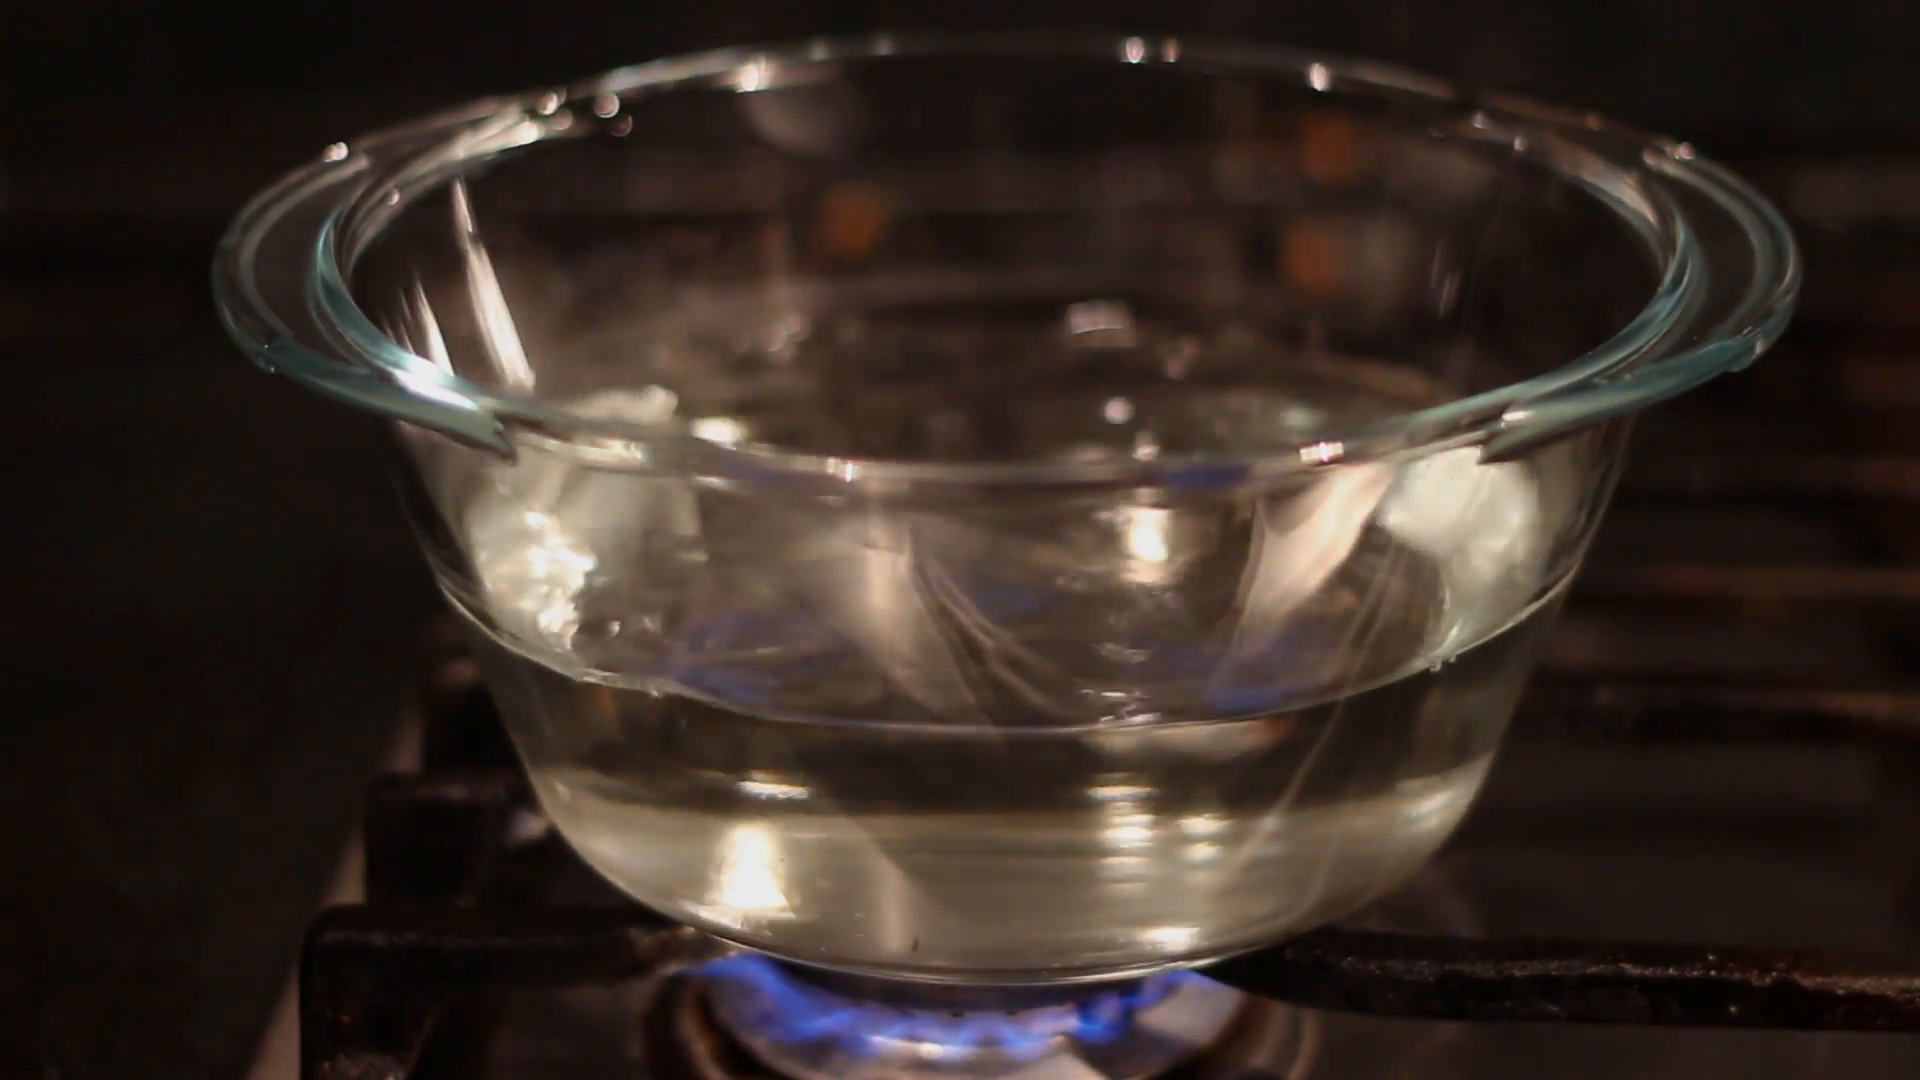 boiling water in transparent glass pot Stock Video Footage - Videoblocks